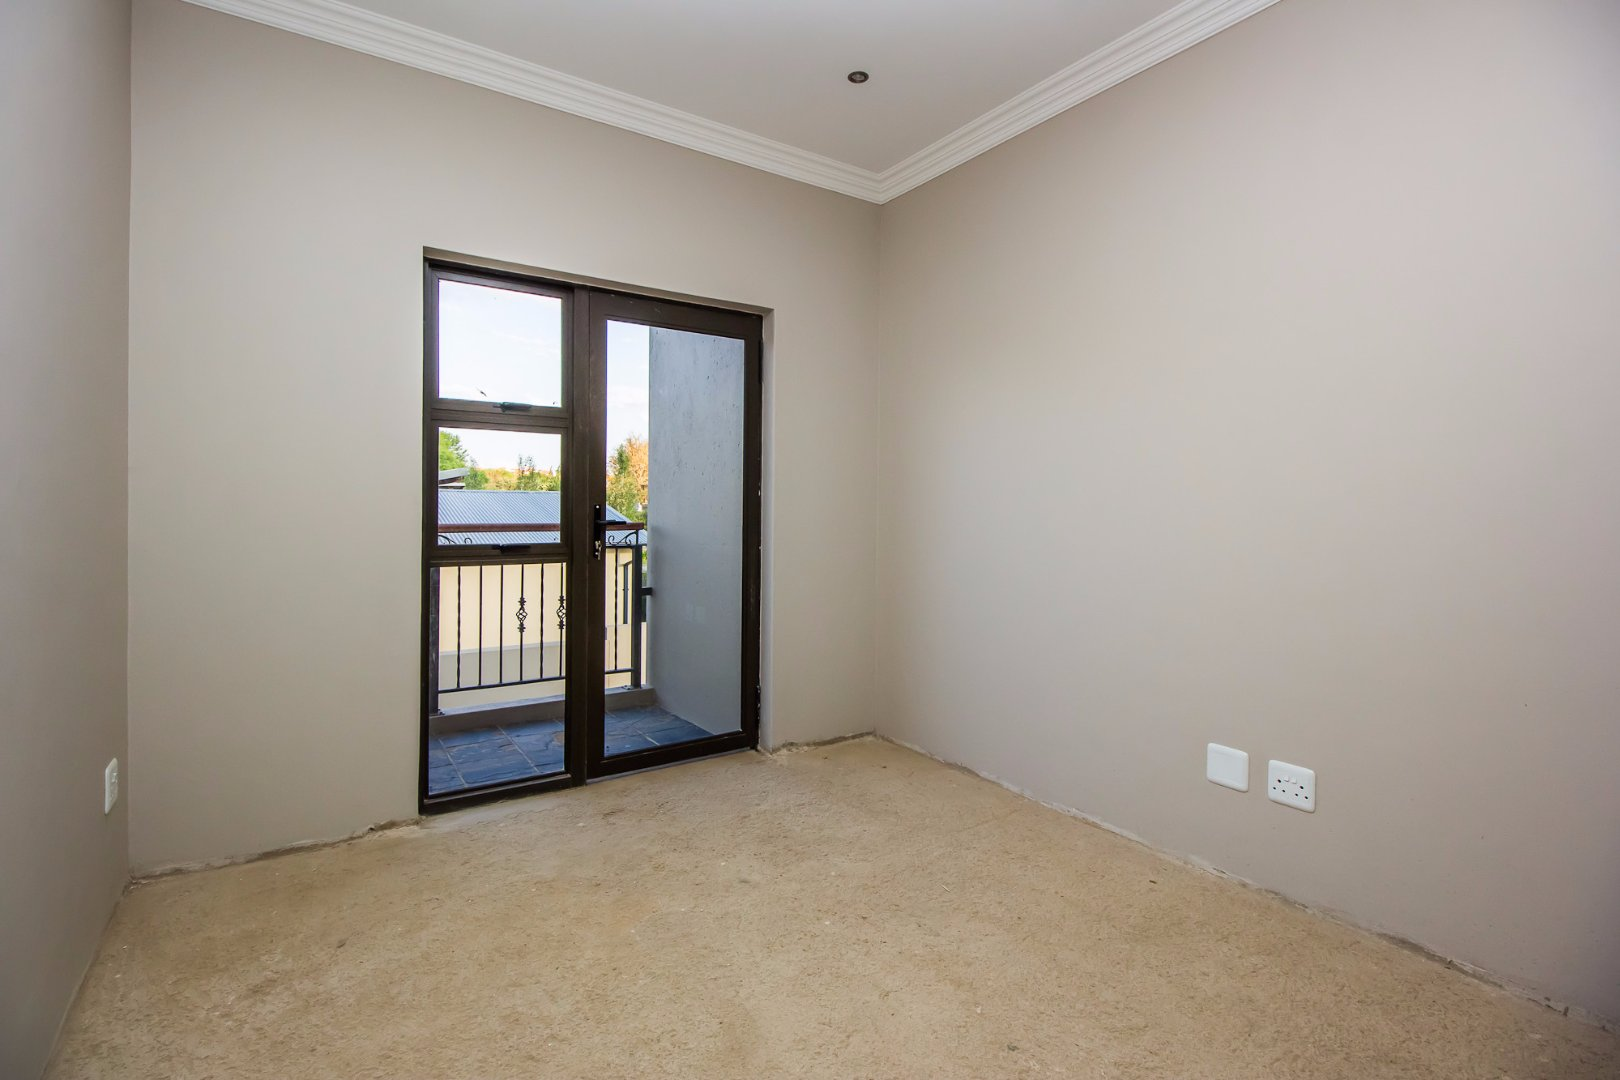 Hazeldean property for sale. Ref No: 13540486. Picture no 21